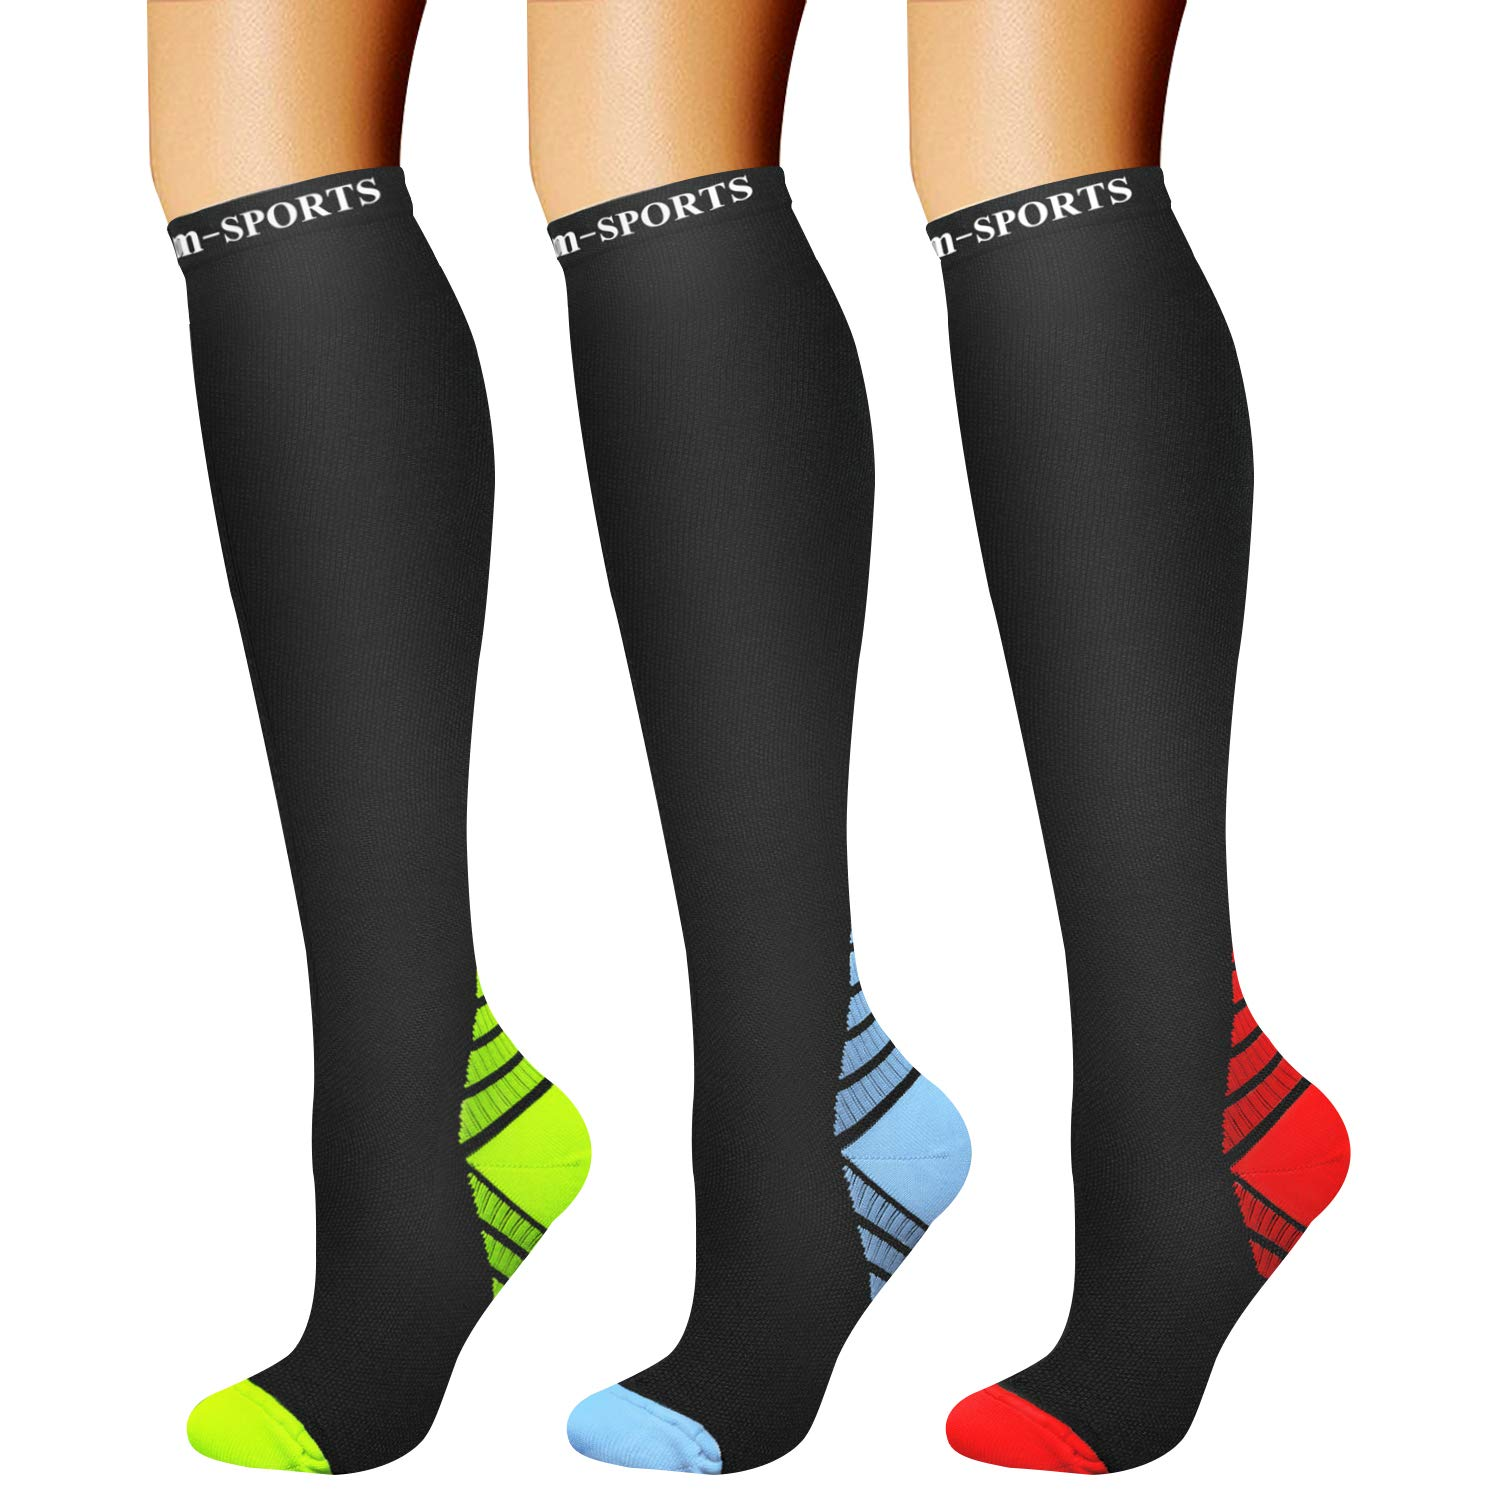 CHARMKING Compression Socks (3 Pairs) 15-20 mmHg is Best Athletic & Medical for Men & Women, Running, Flight, Travel, Nurses, Edema - Boost Performance, Blood Circulation & Recovery (S/M, Assorted 22) by CHARMKING